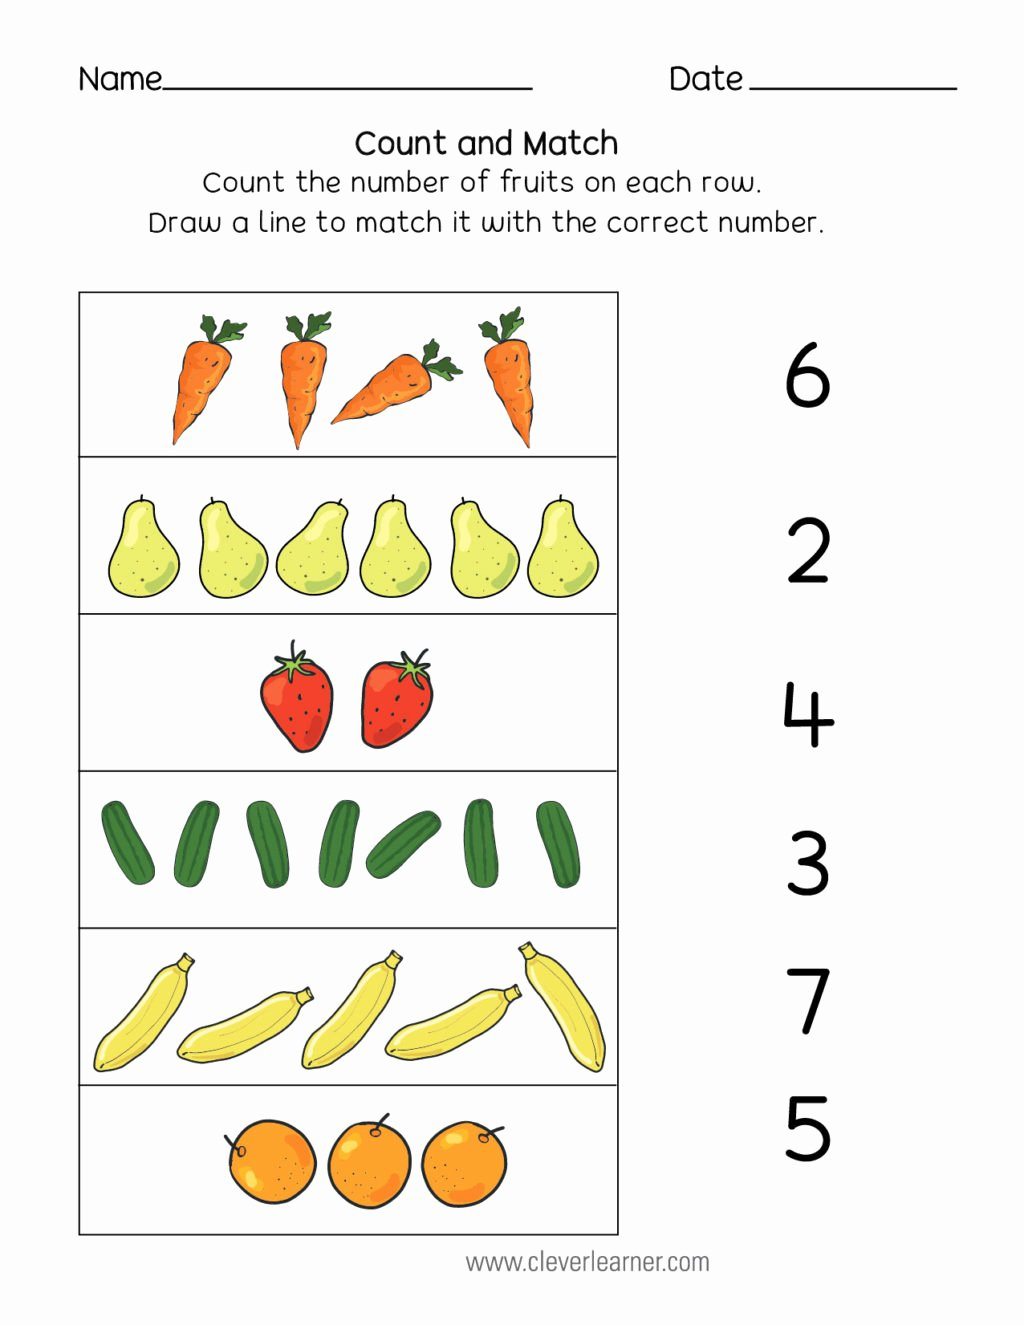 Worksheets for Preschoolers Matching Inspirational Worksheet Number Matching Counting and Writing Worksheets